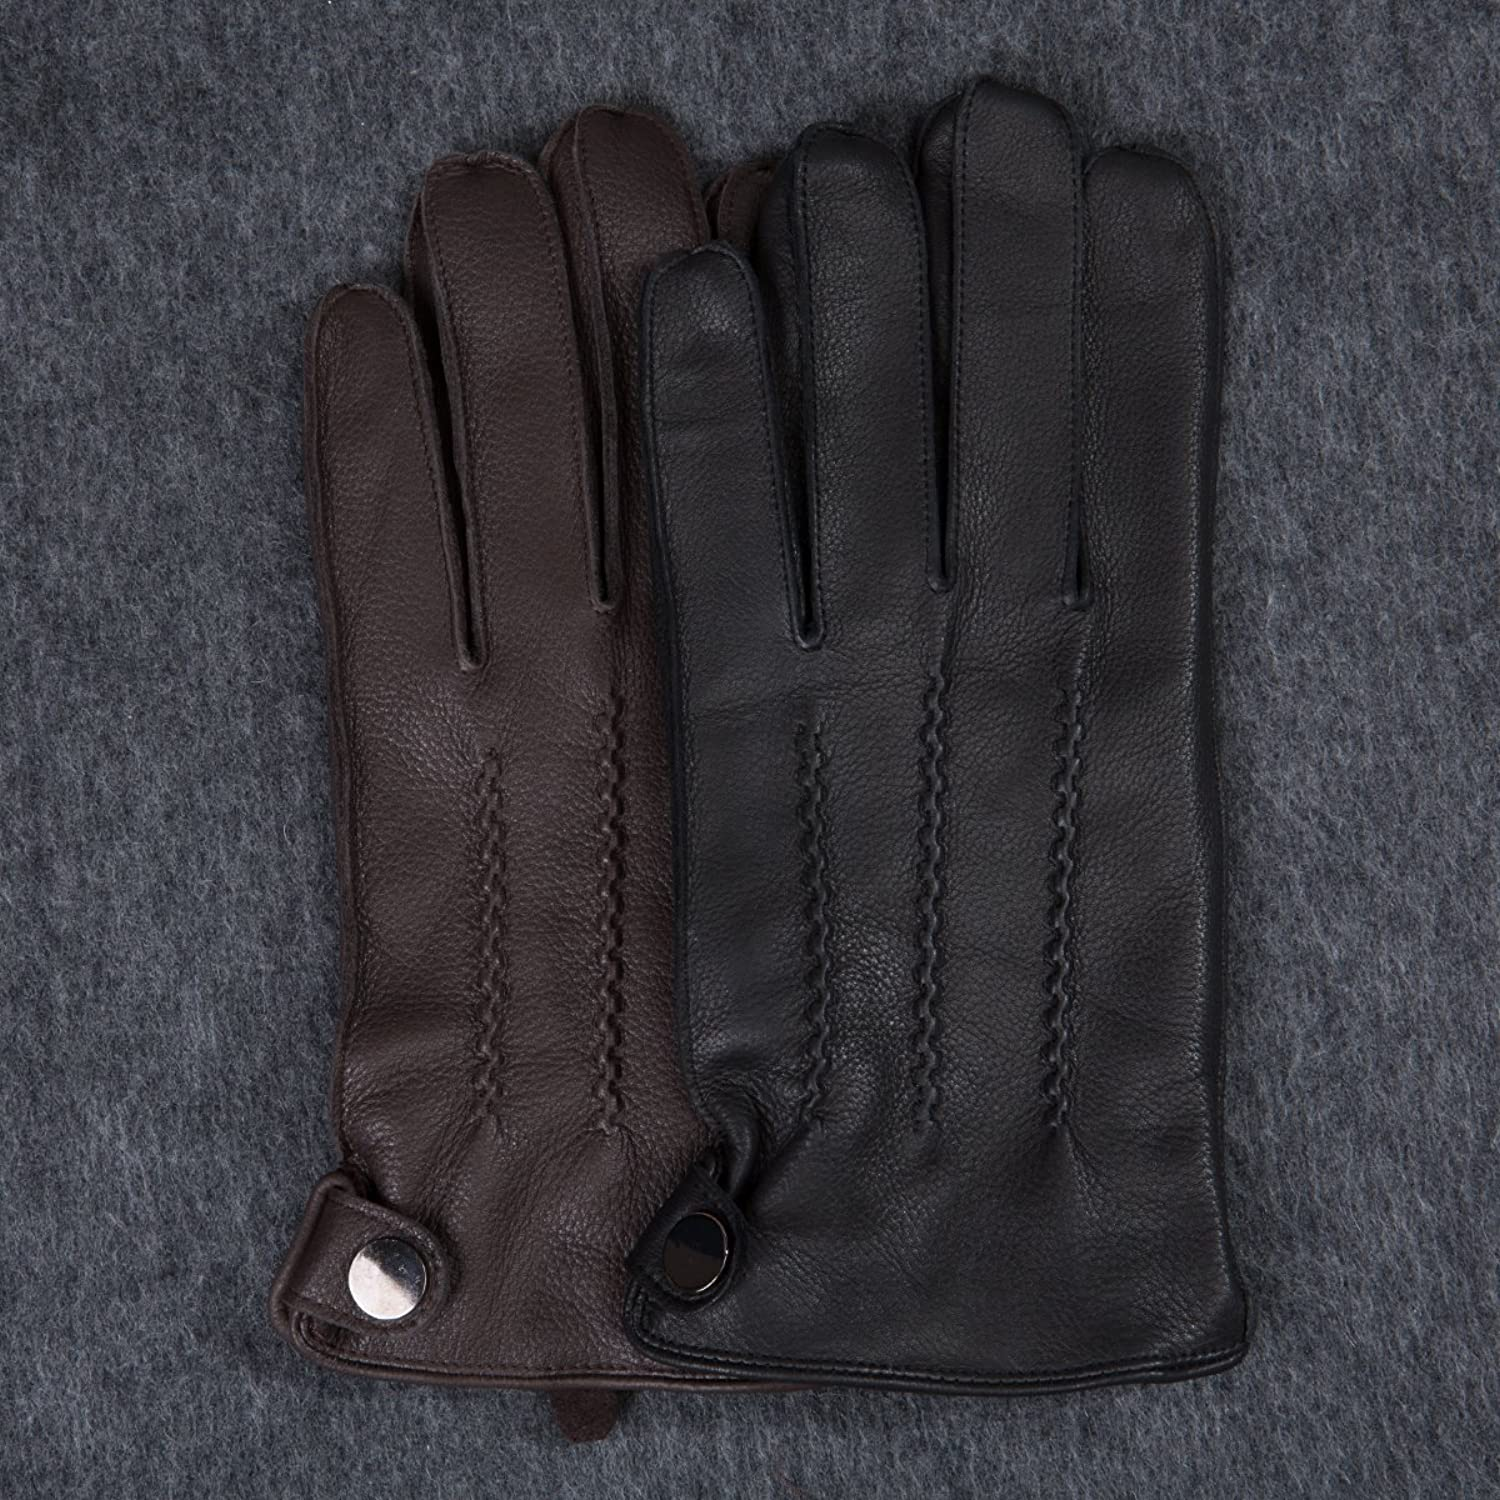 Mens leather gloves xl - Matsu Men Winter Warm Deerskin Leather 100 Cashmere Lined Motorcycle Driving Dress Leather Gloves M1066 At Amazon Men S Clothing Store